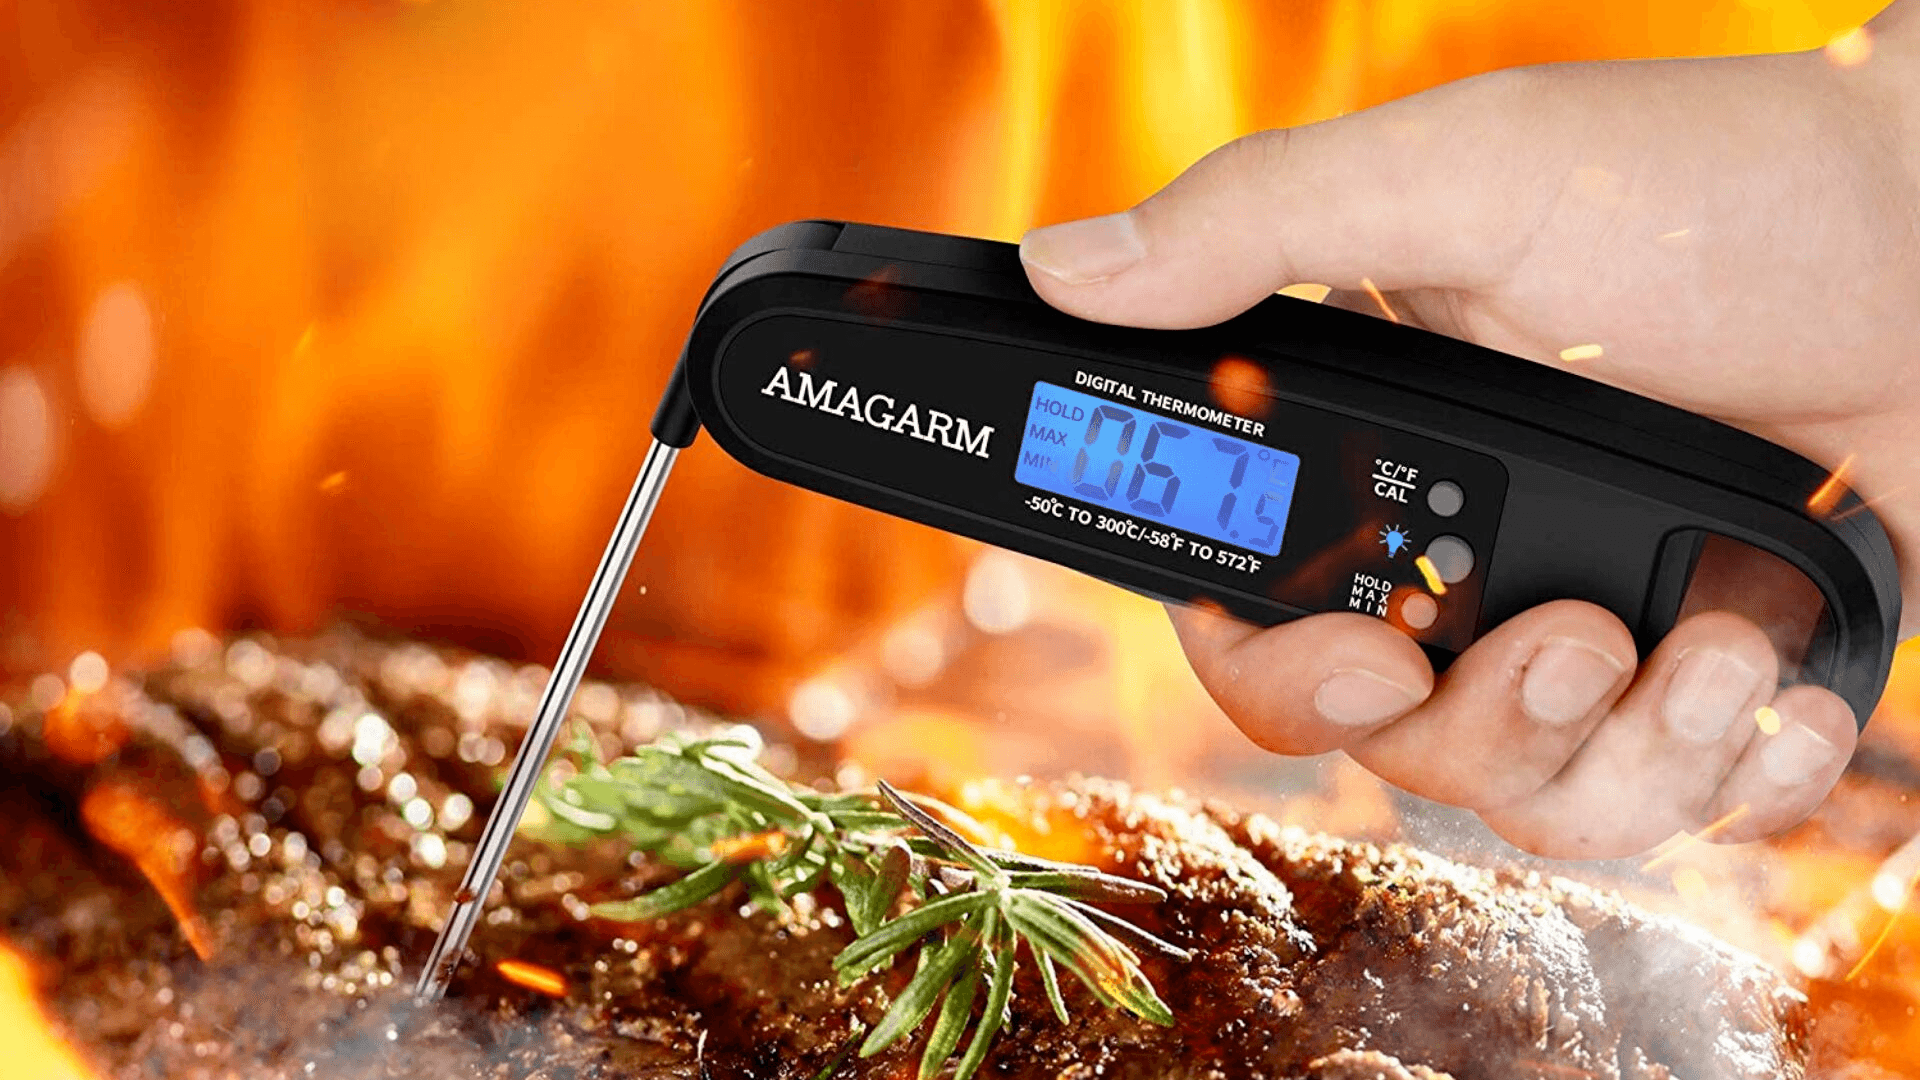 AMAGARM Digital Meat Thermometer being used to cook steak